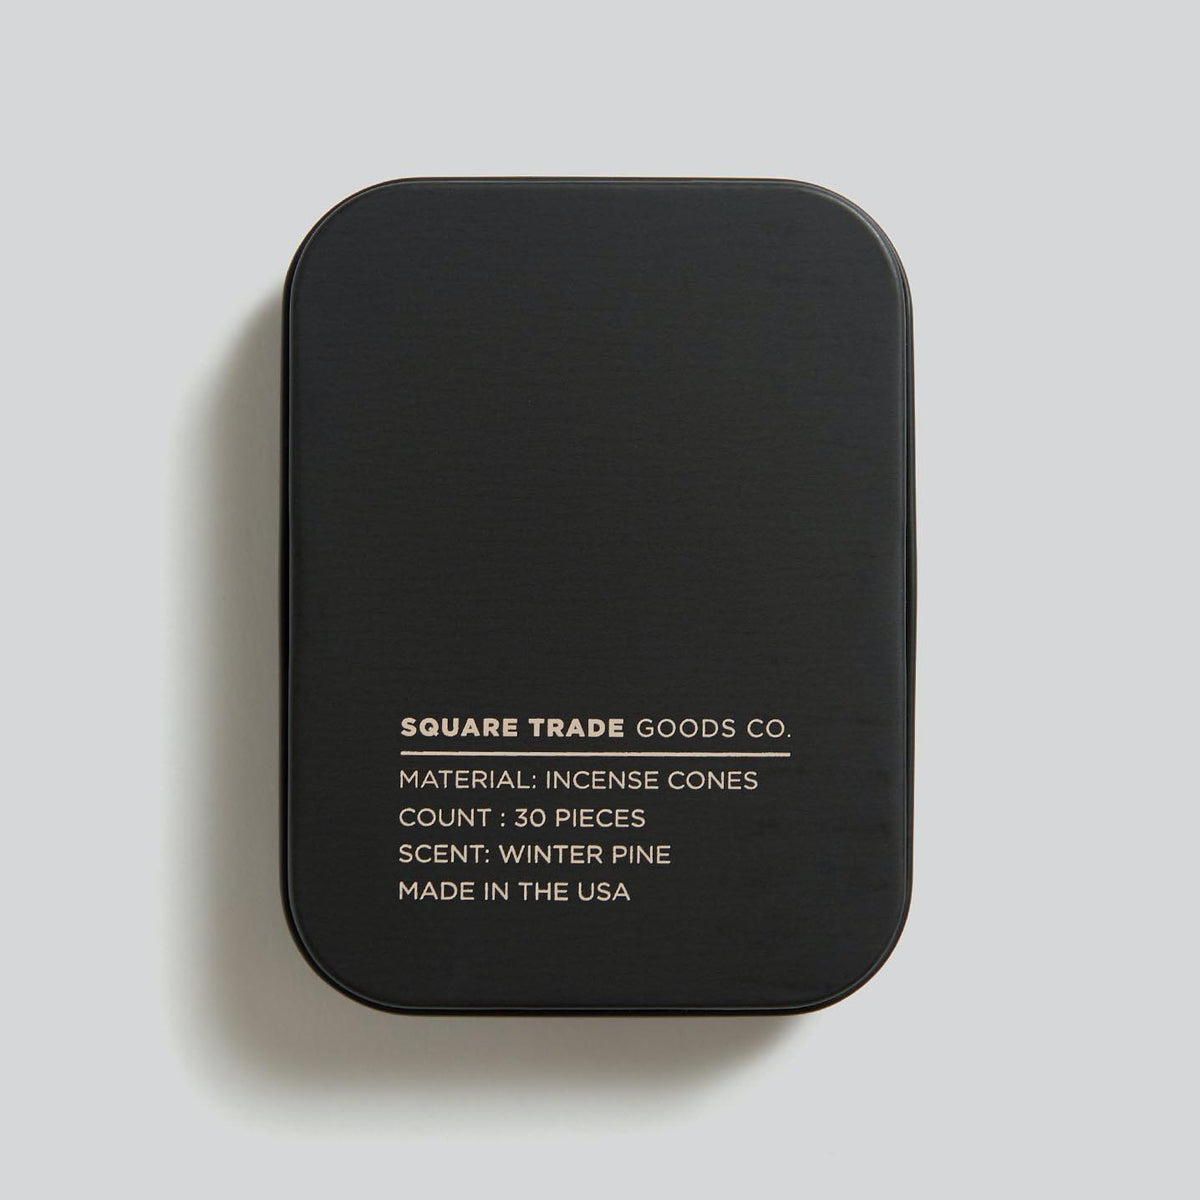 Square Trade Goods Co. Incense Cones Winter Pine